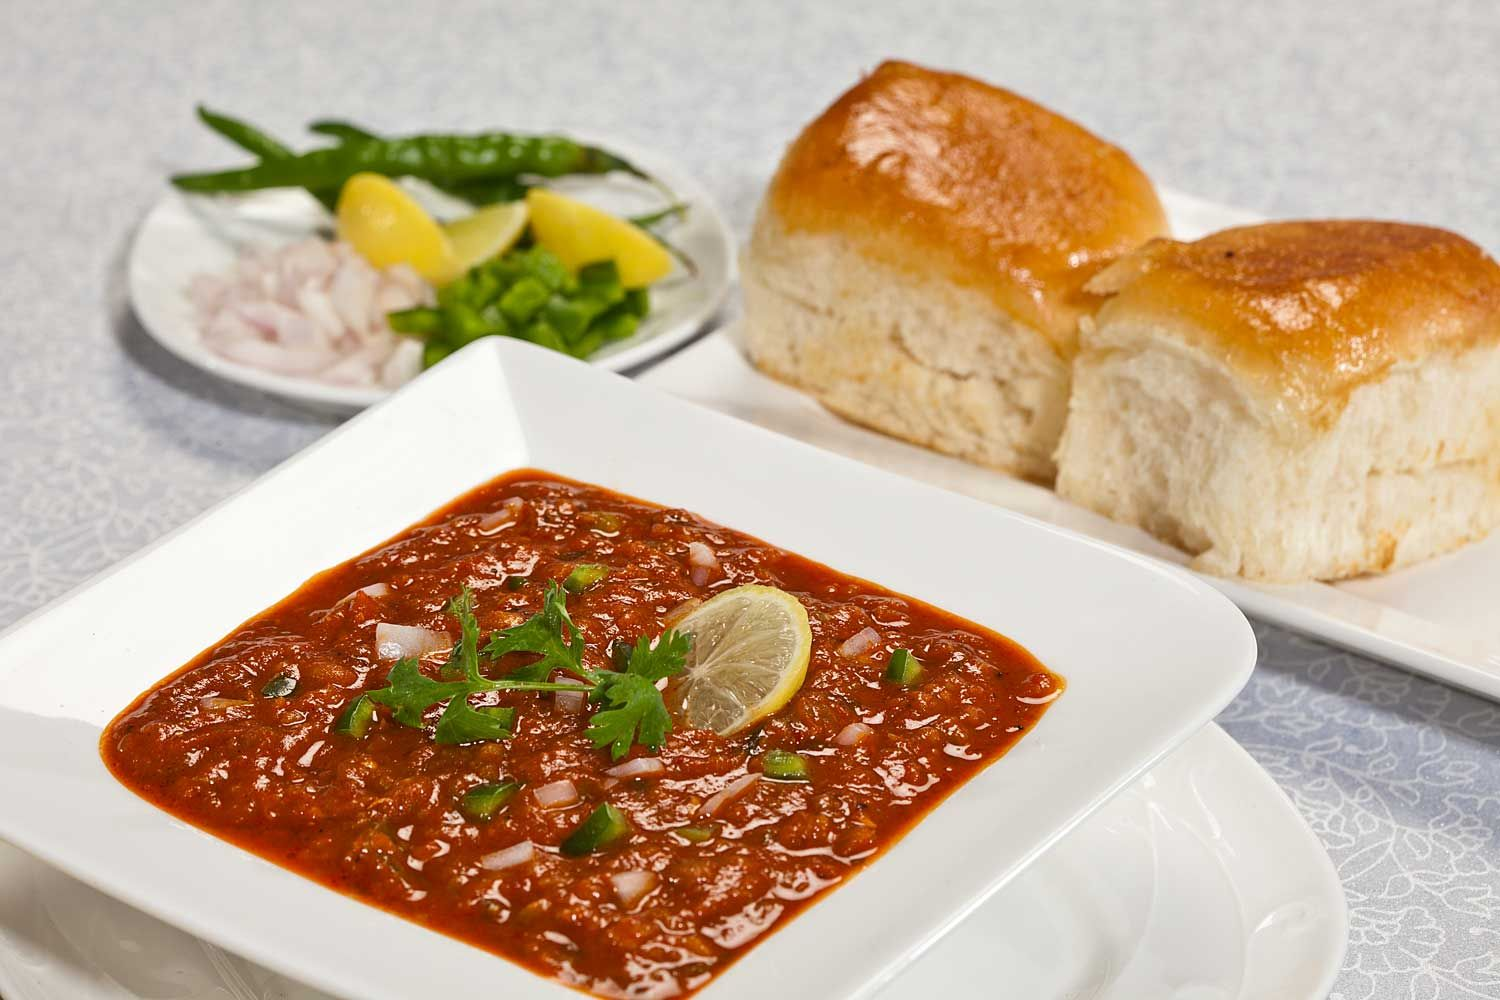 Pav bhaji a tasty version of mixed vegetables recipe pav pav bhaji a tasty version of mixed vegetables recipe indian street style forumfinder Gallery